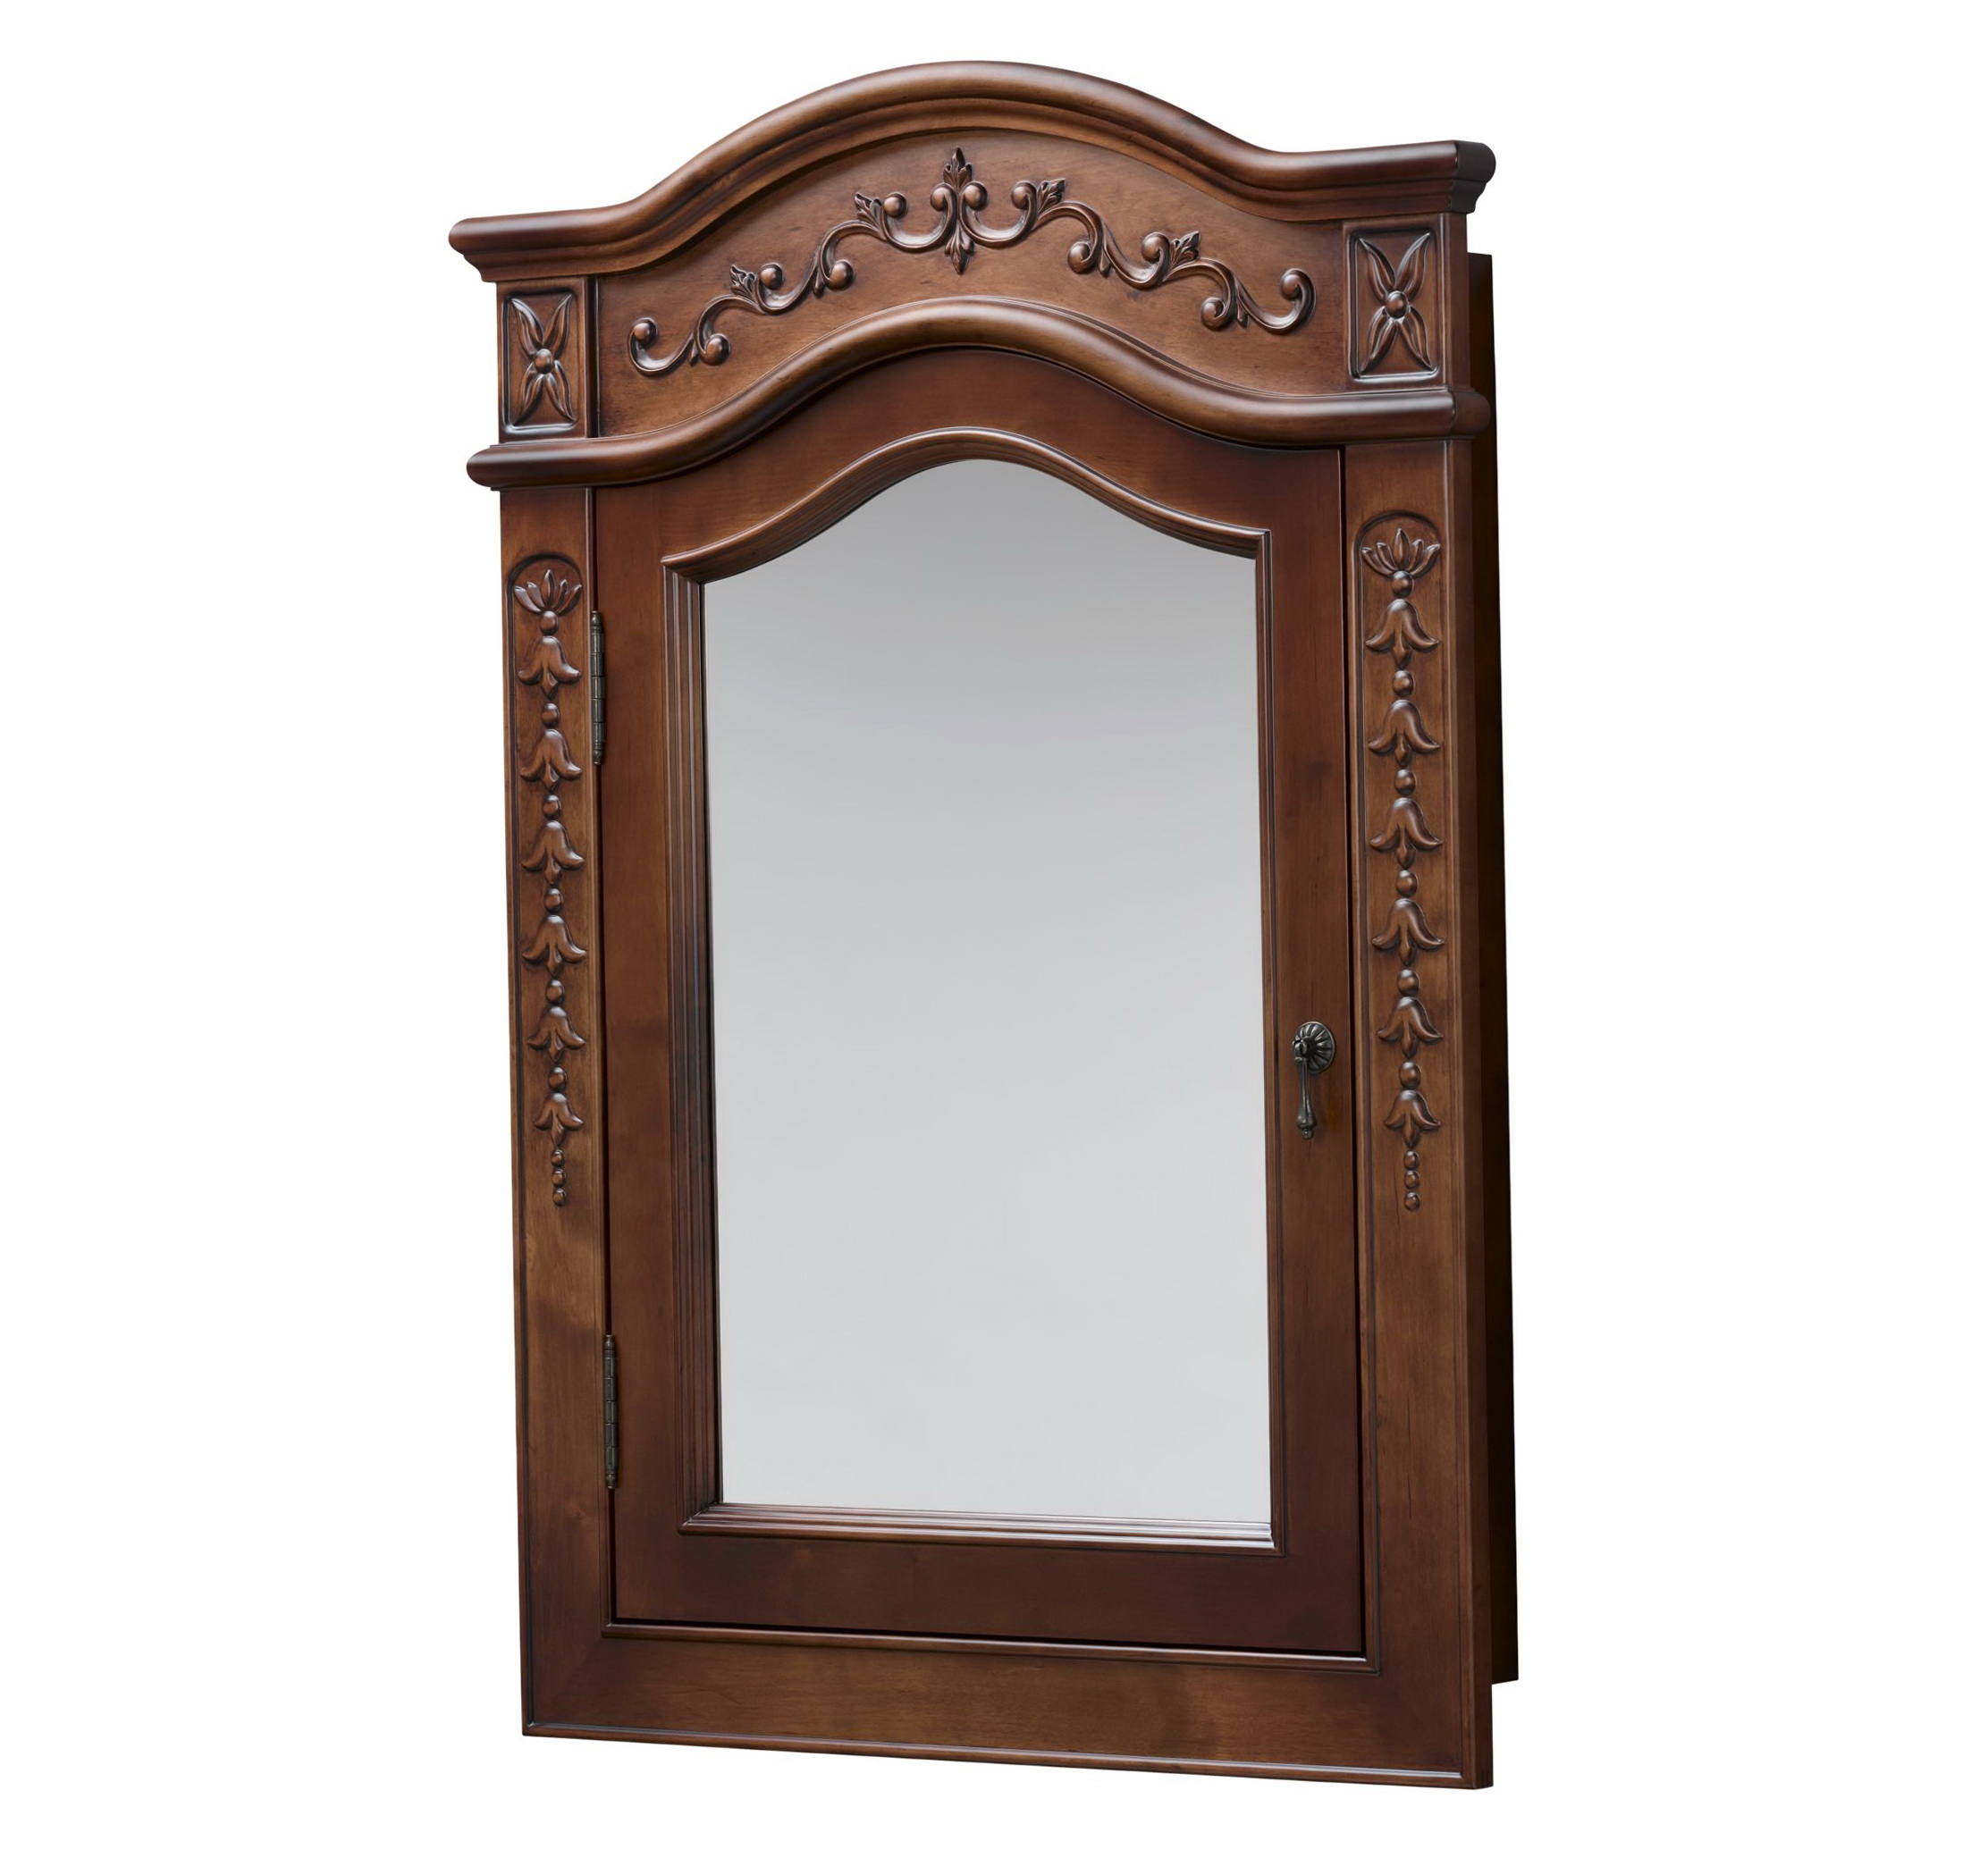 Antique Medicine Cabinets With Mirror  Home Design Ideas